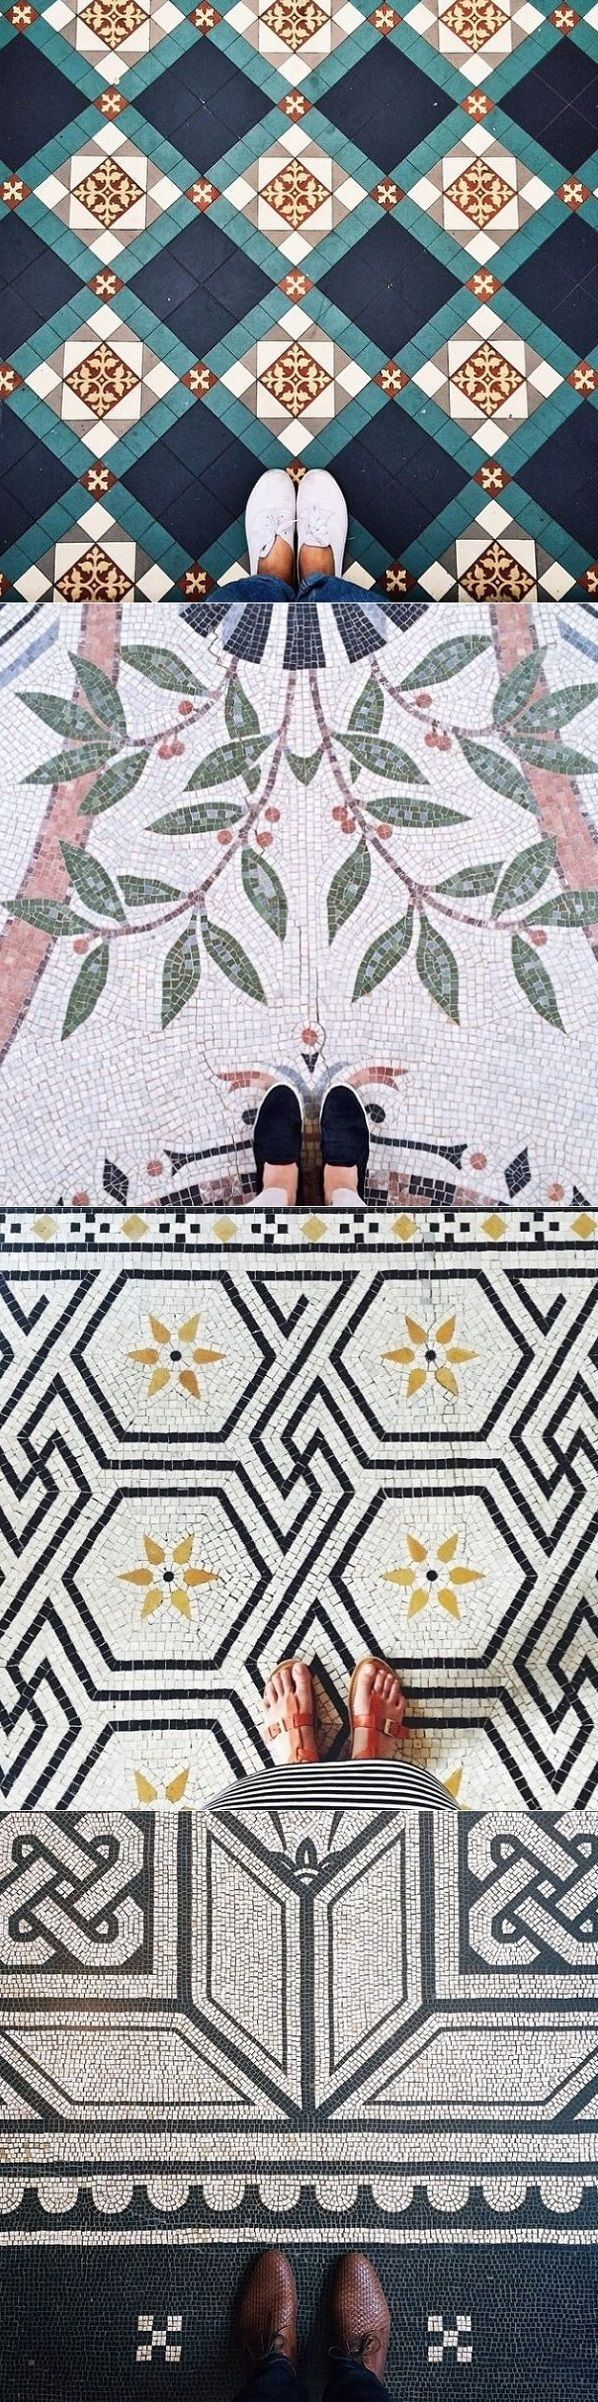 Such an array of striking pretty floors, something for everyone, just ignore the feet!